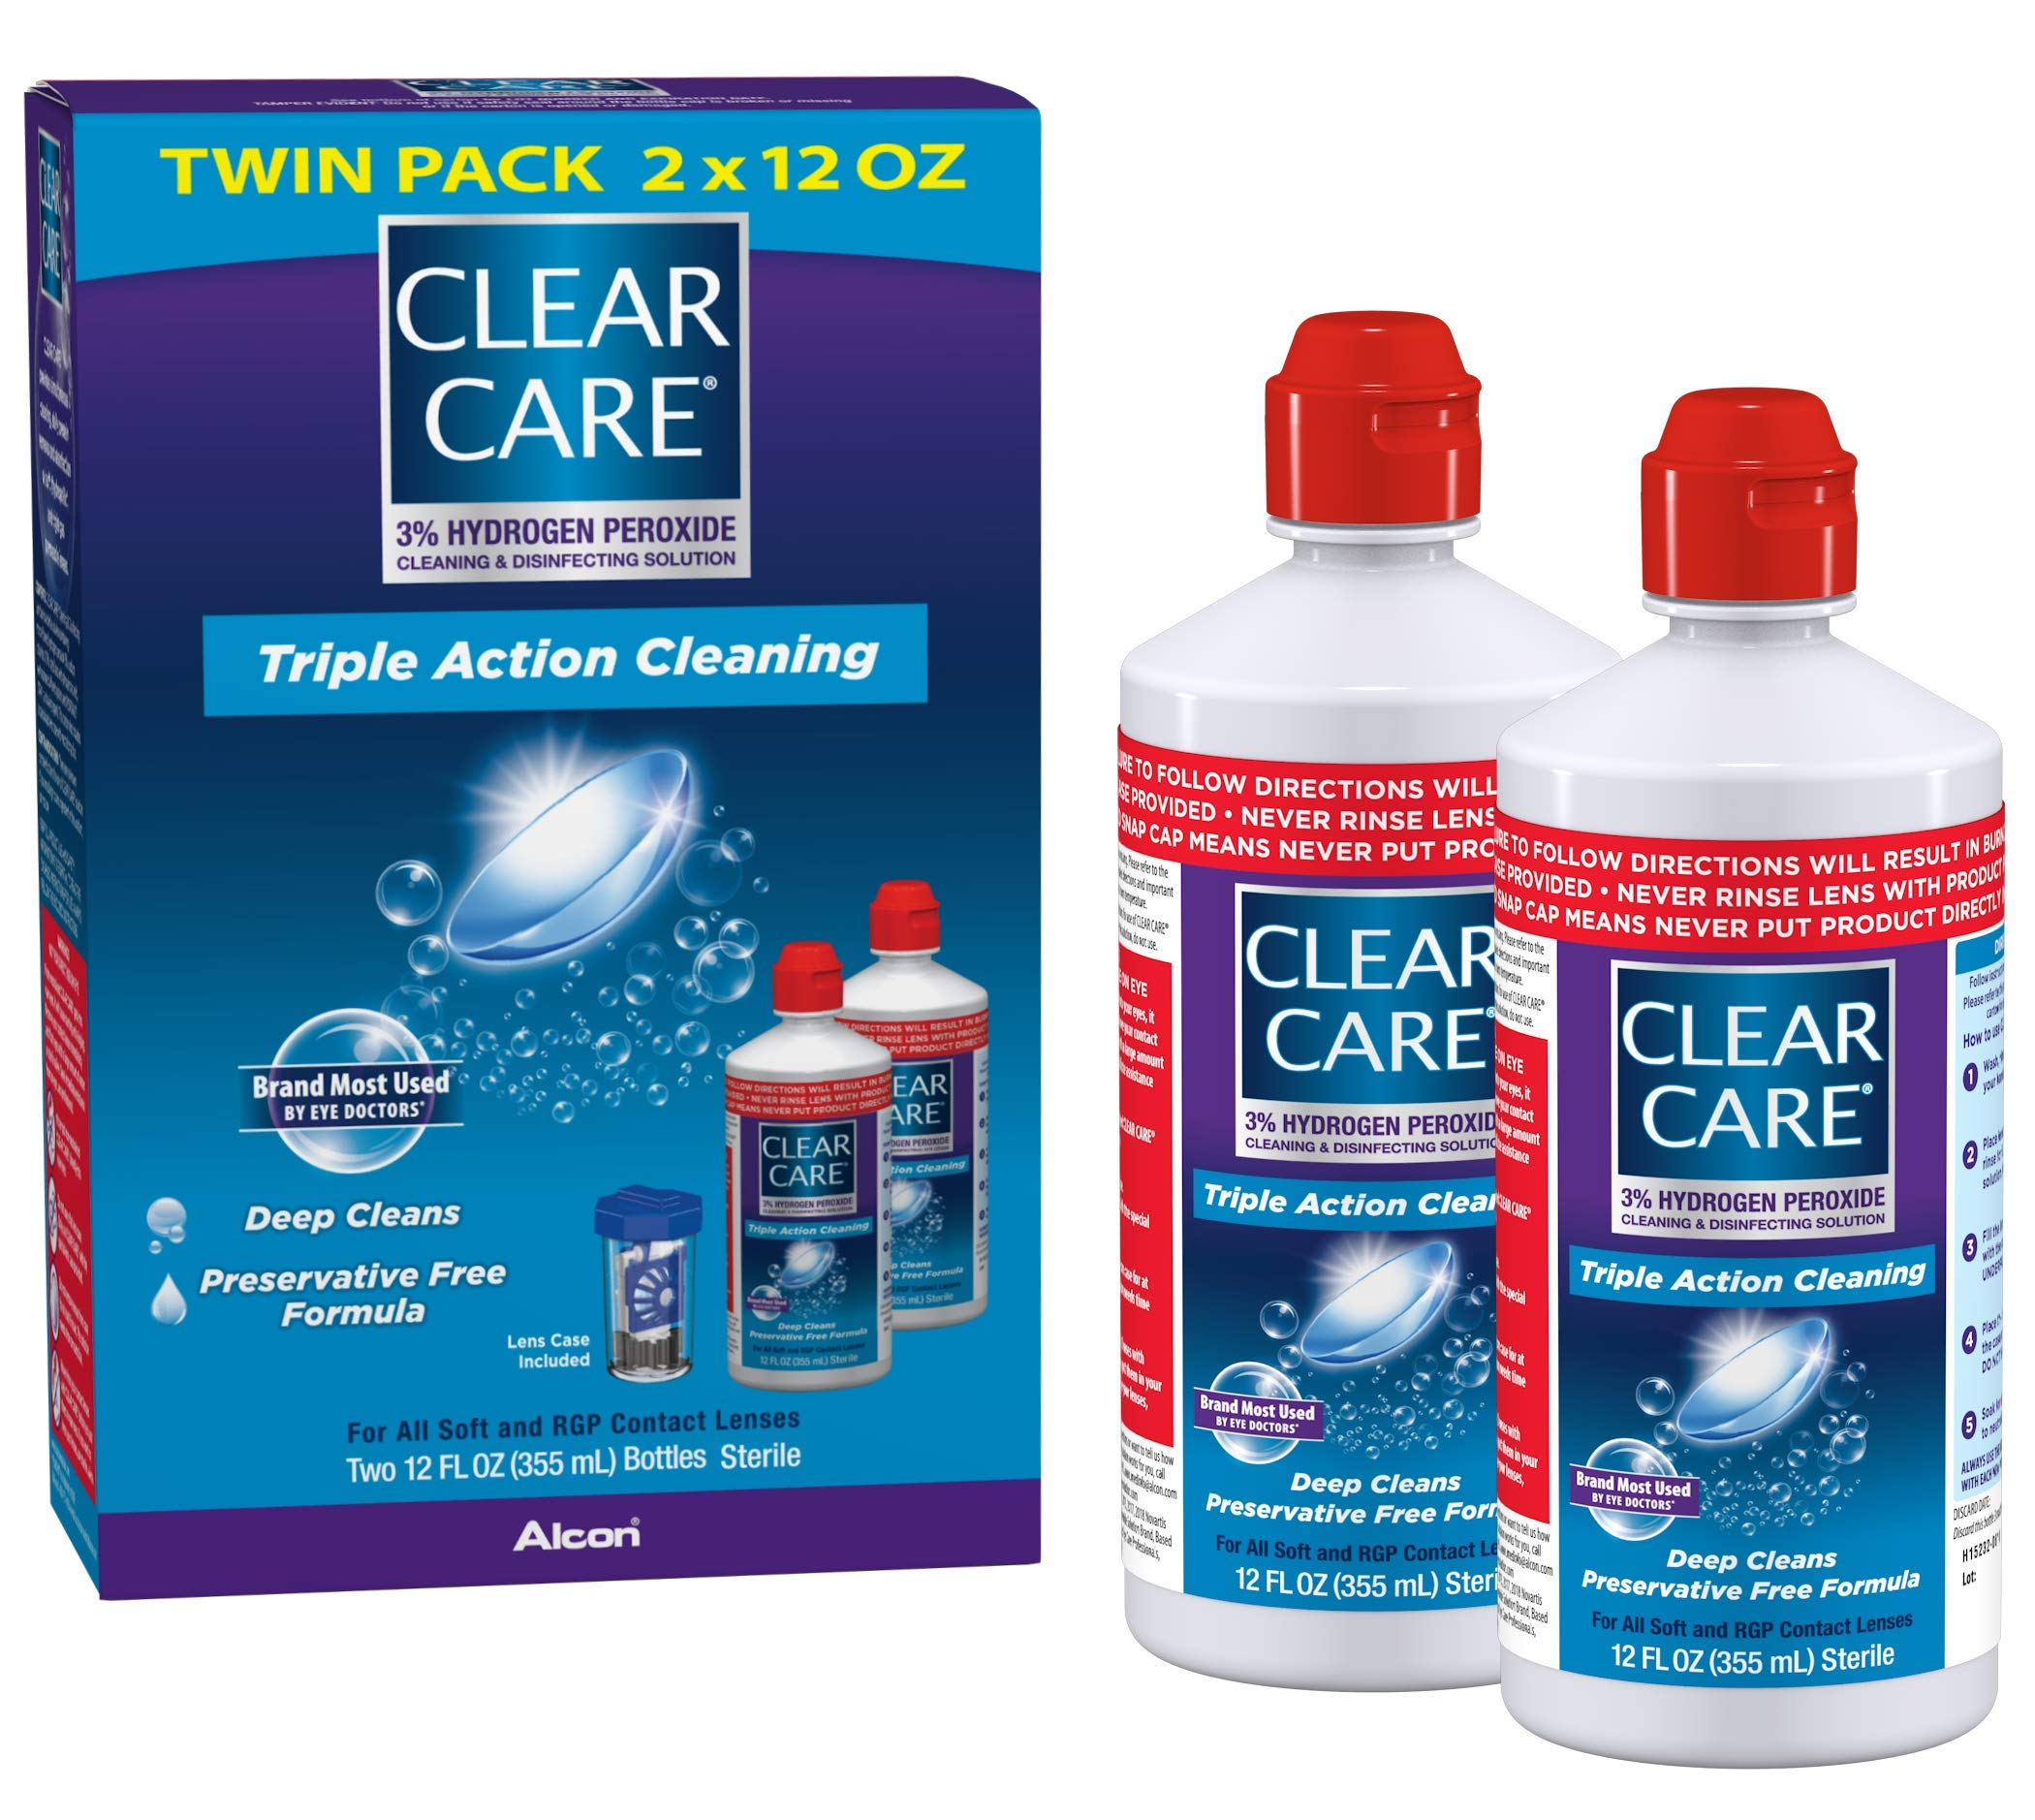 Clear Care Cleaning & Disinfecting Solution with Lens Case, Twin Pack, 12 Fl Oz (Pack of 2)